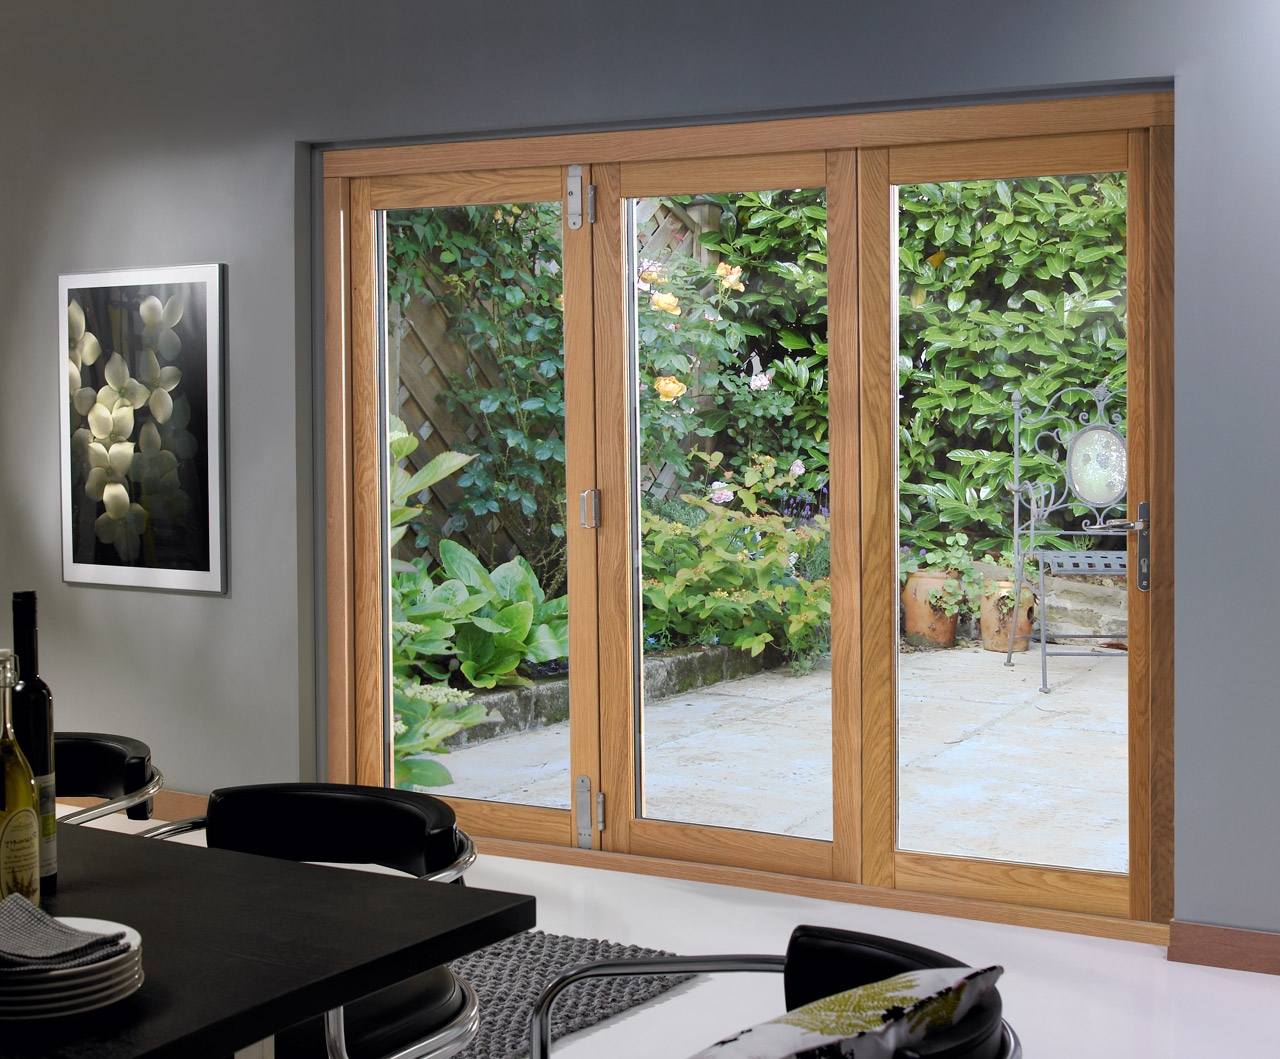 8 foot french doors exterior photo - 7